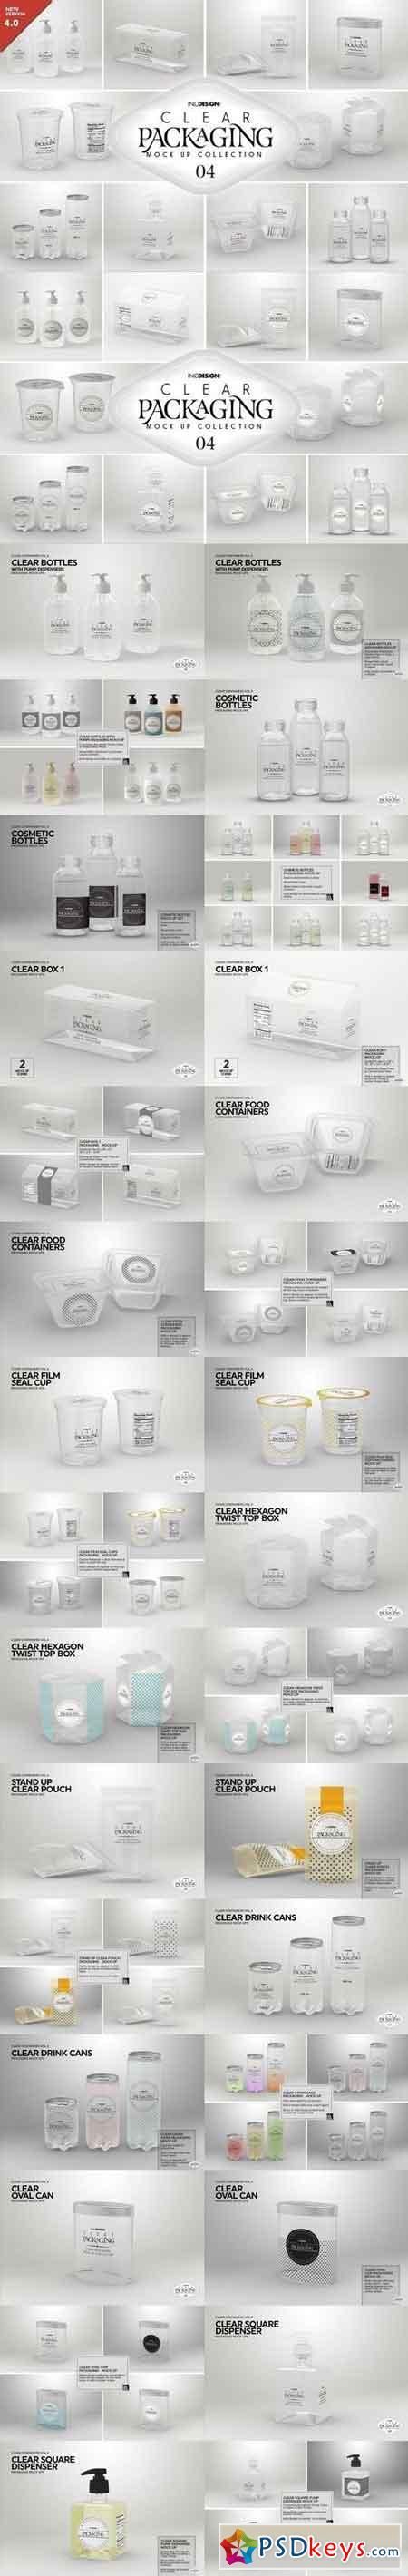 04 Clear Container Packaging MockUps 2062006